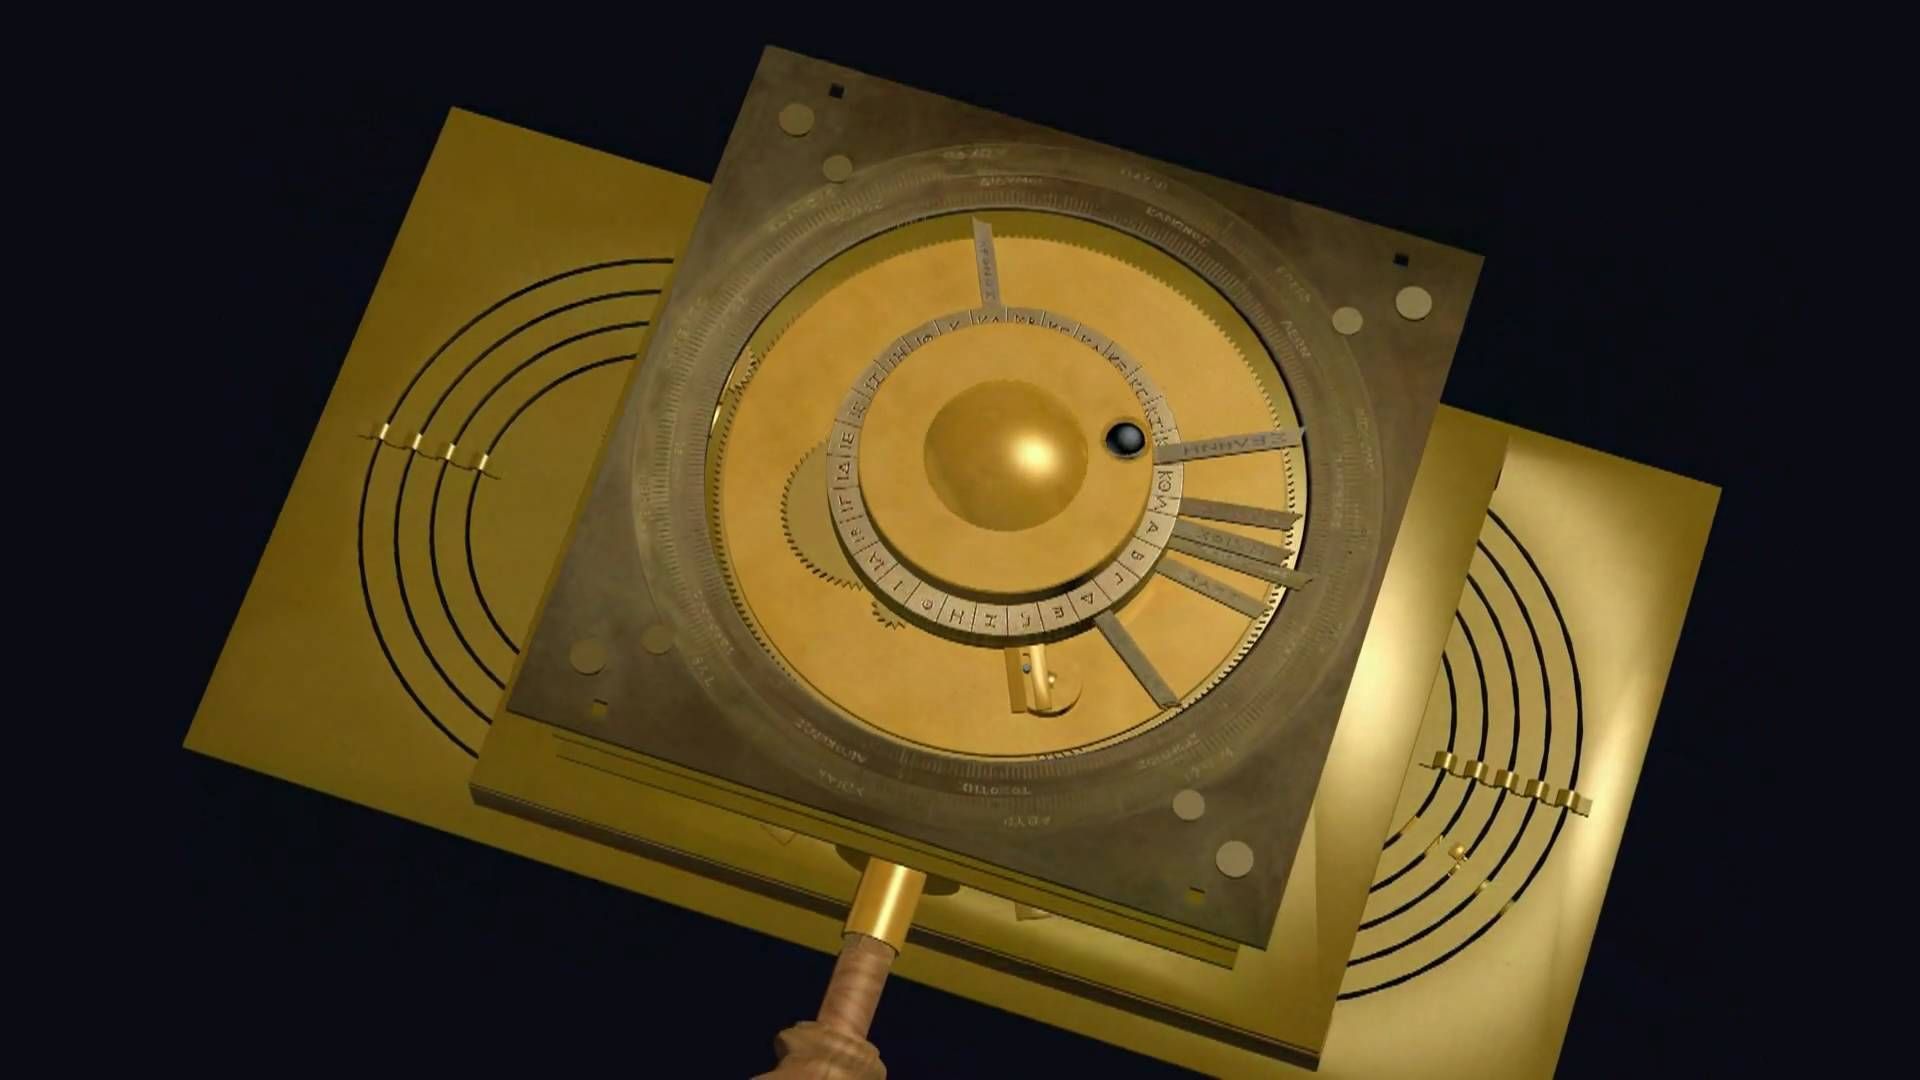 Virtual model of the (still) mysterious Antikythera Mechanism by Mogi Vicentini based on the theoretical and mechanical model by Michael Wright. Find Mogi Vi...